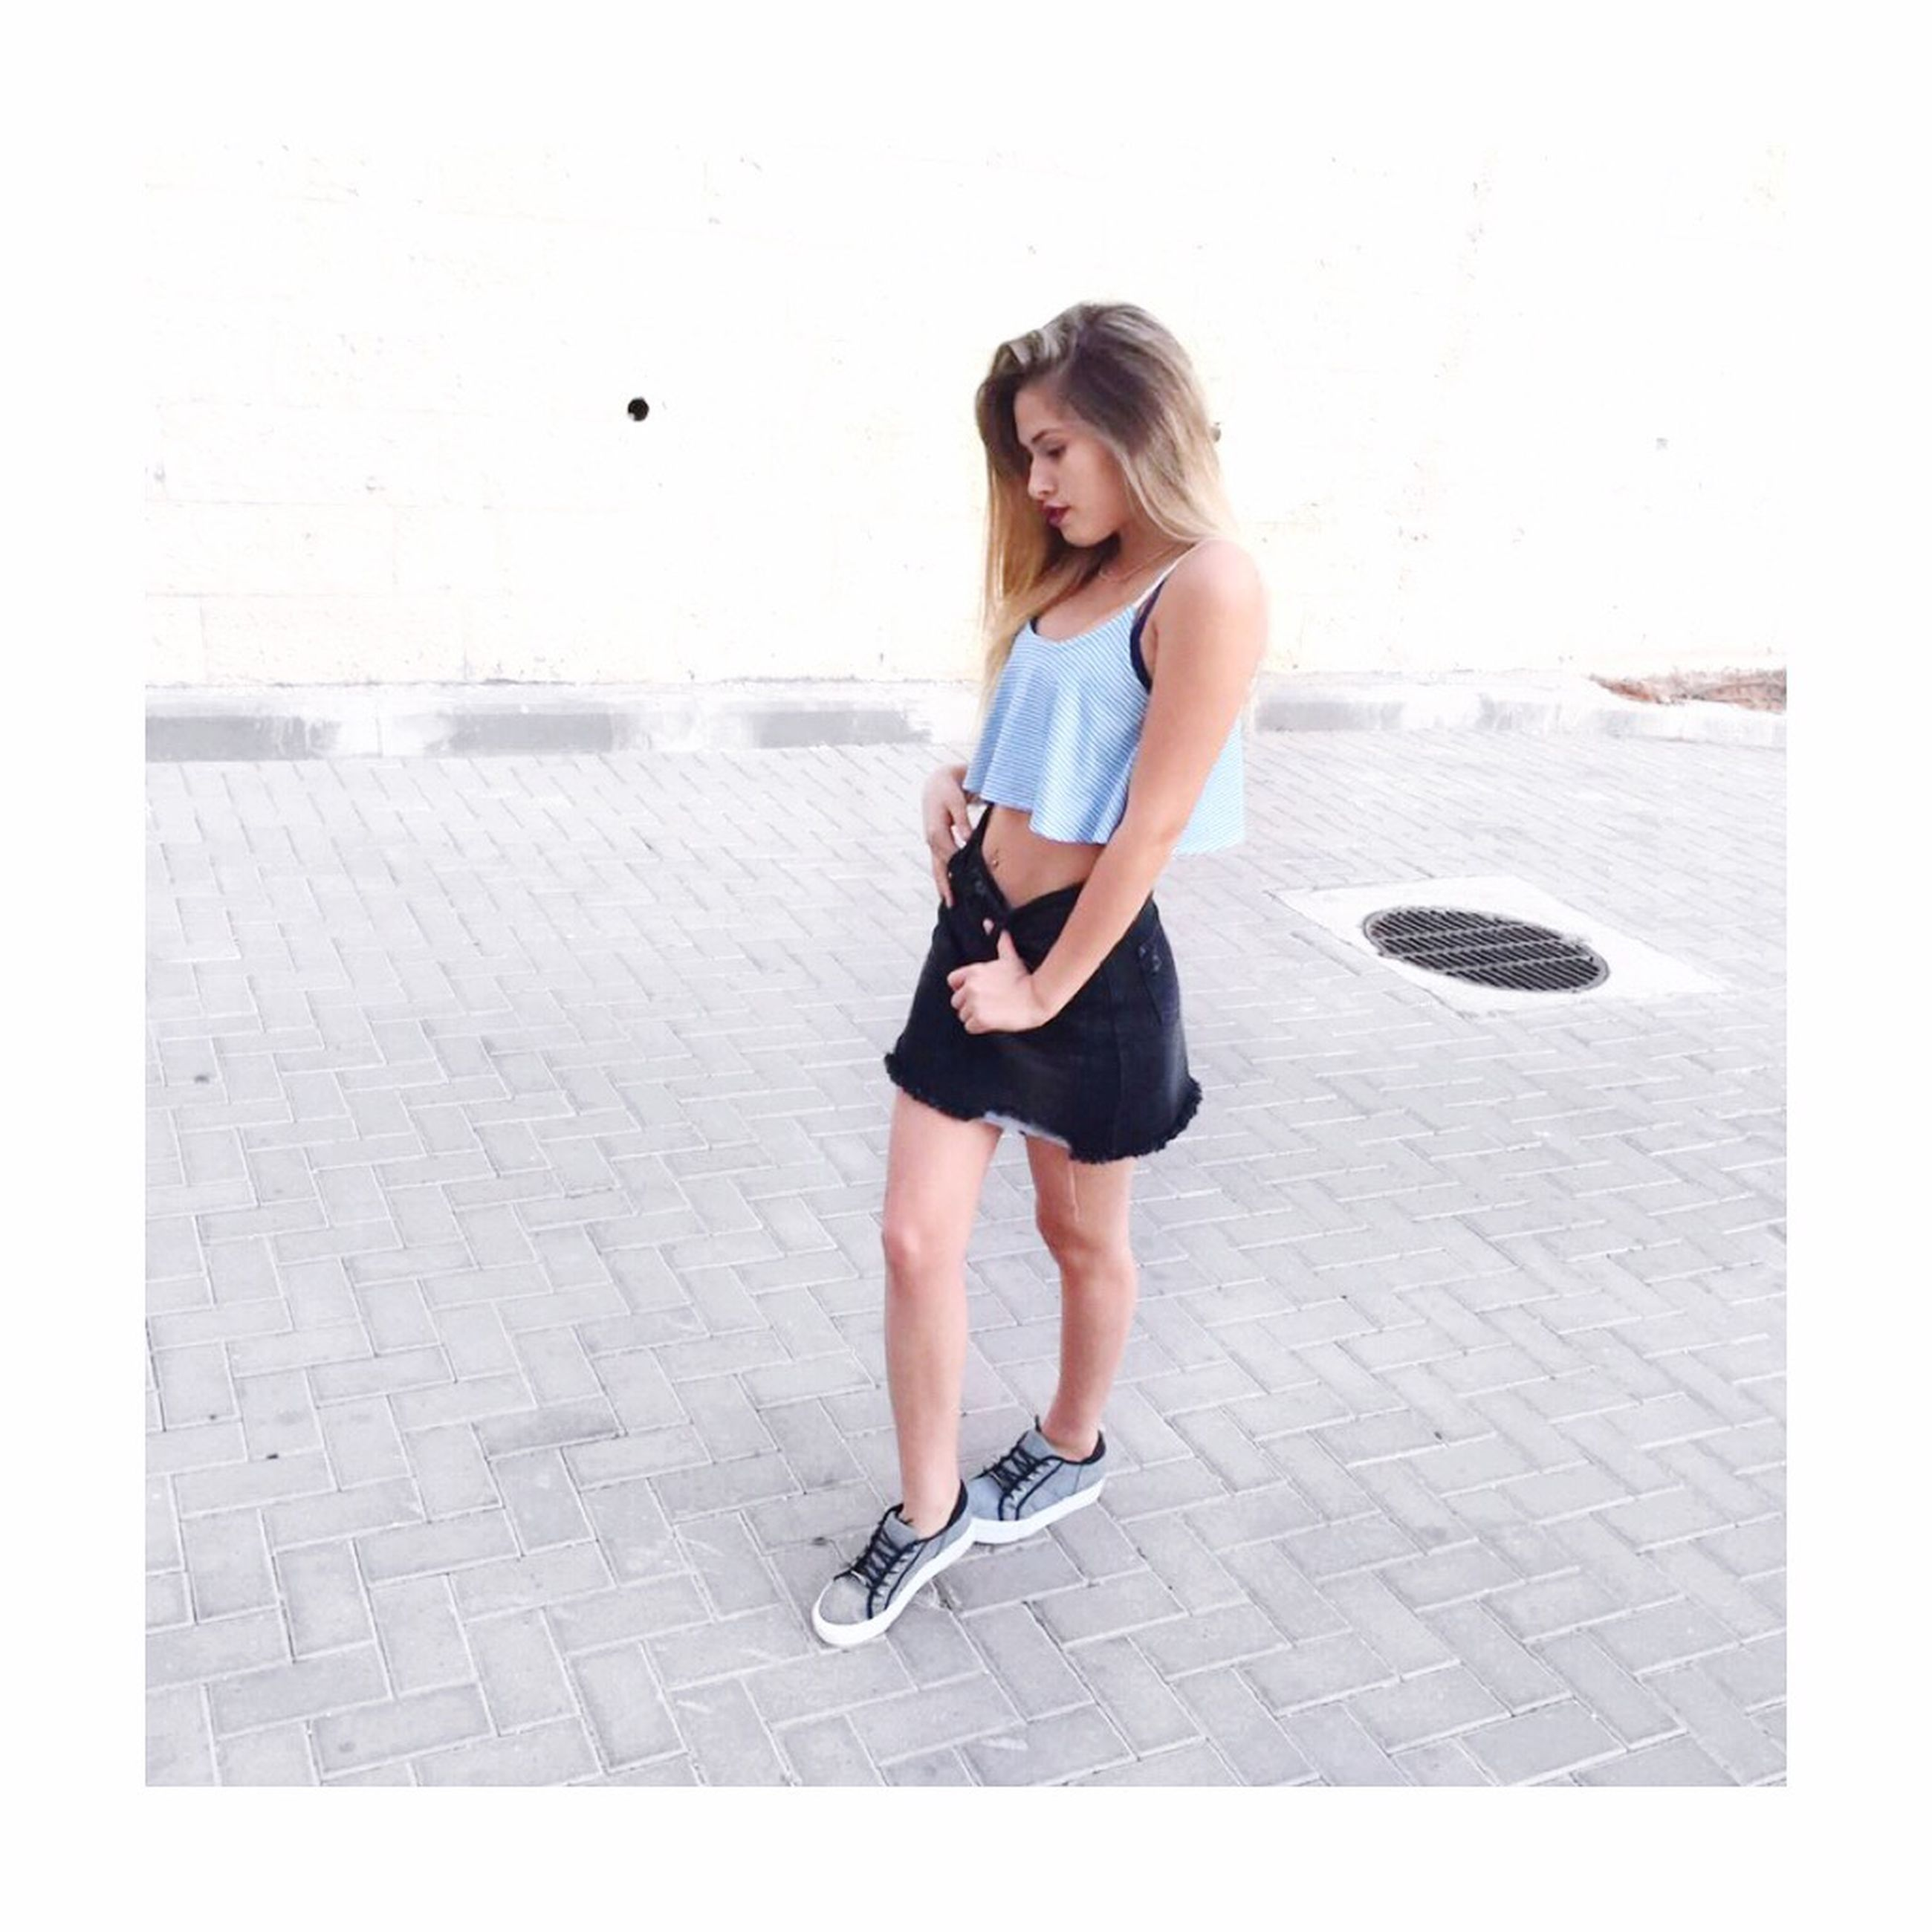 full length, casual clothing, person, young adult, lifestyles, leisure activity, young women, fashionable, shoe, long hair, day, outdoors